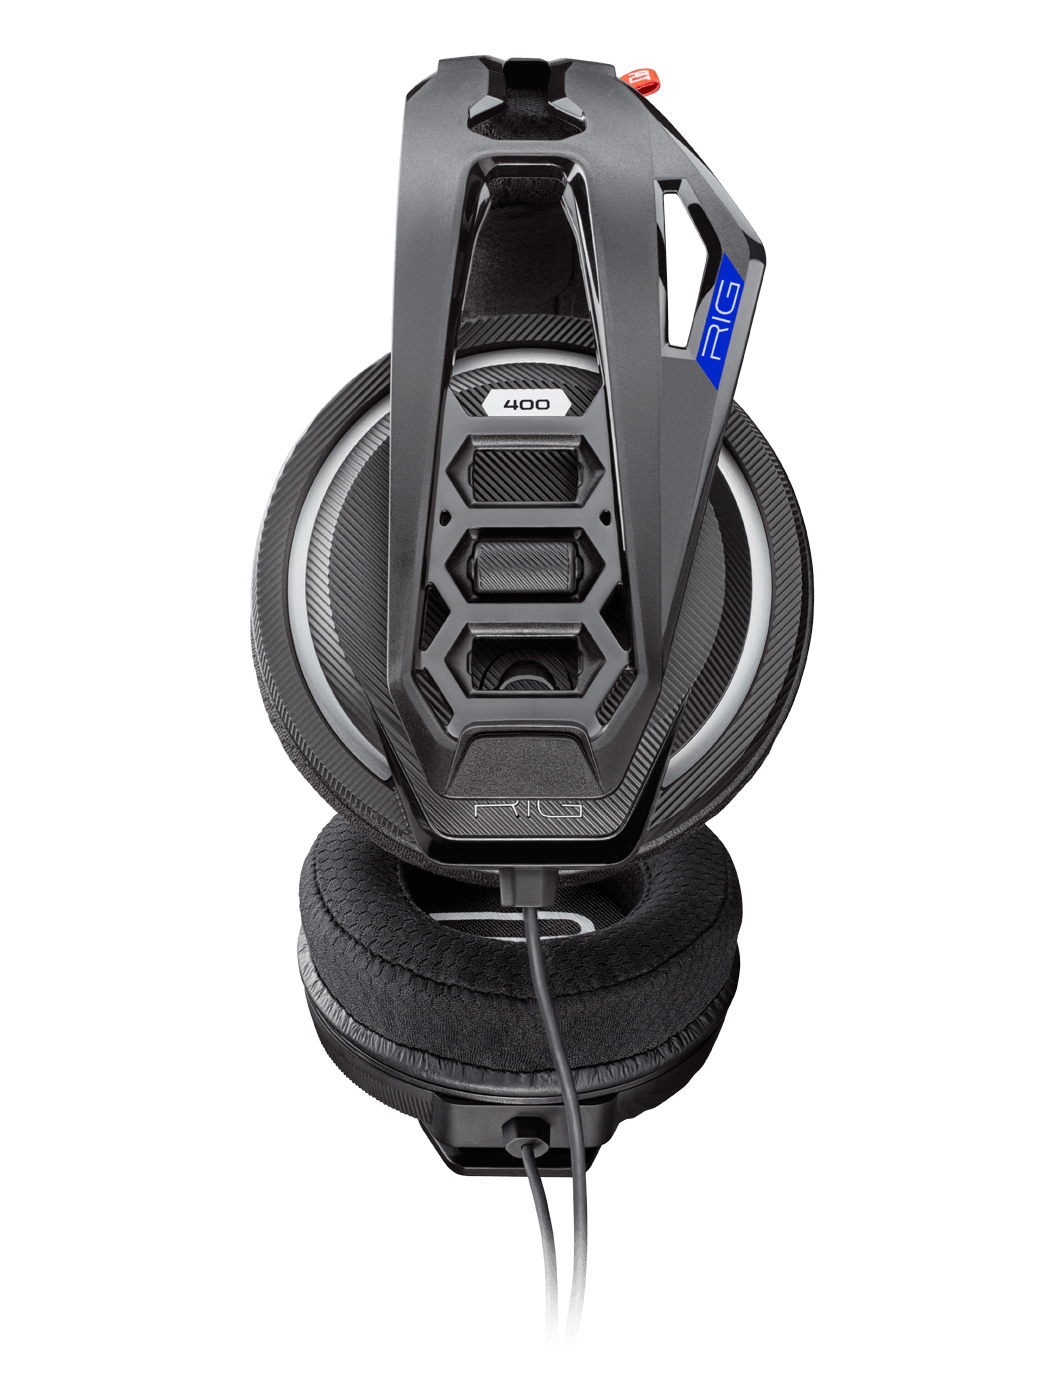 Rig 400hs Gaming Headset Plantronics Headphone With Mic And Volume Wiring Diagram Immersive Comfort